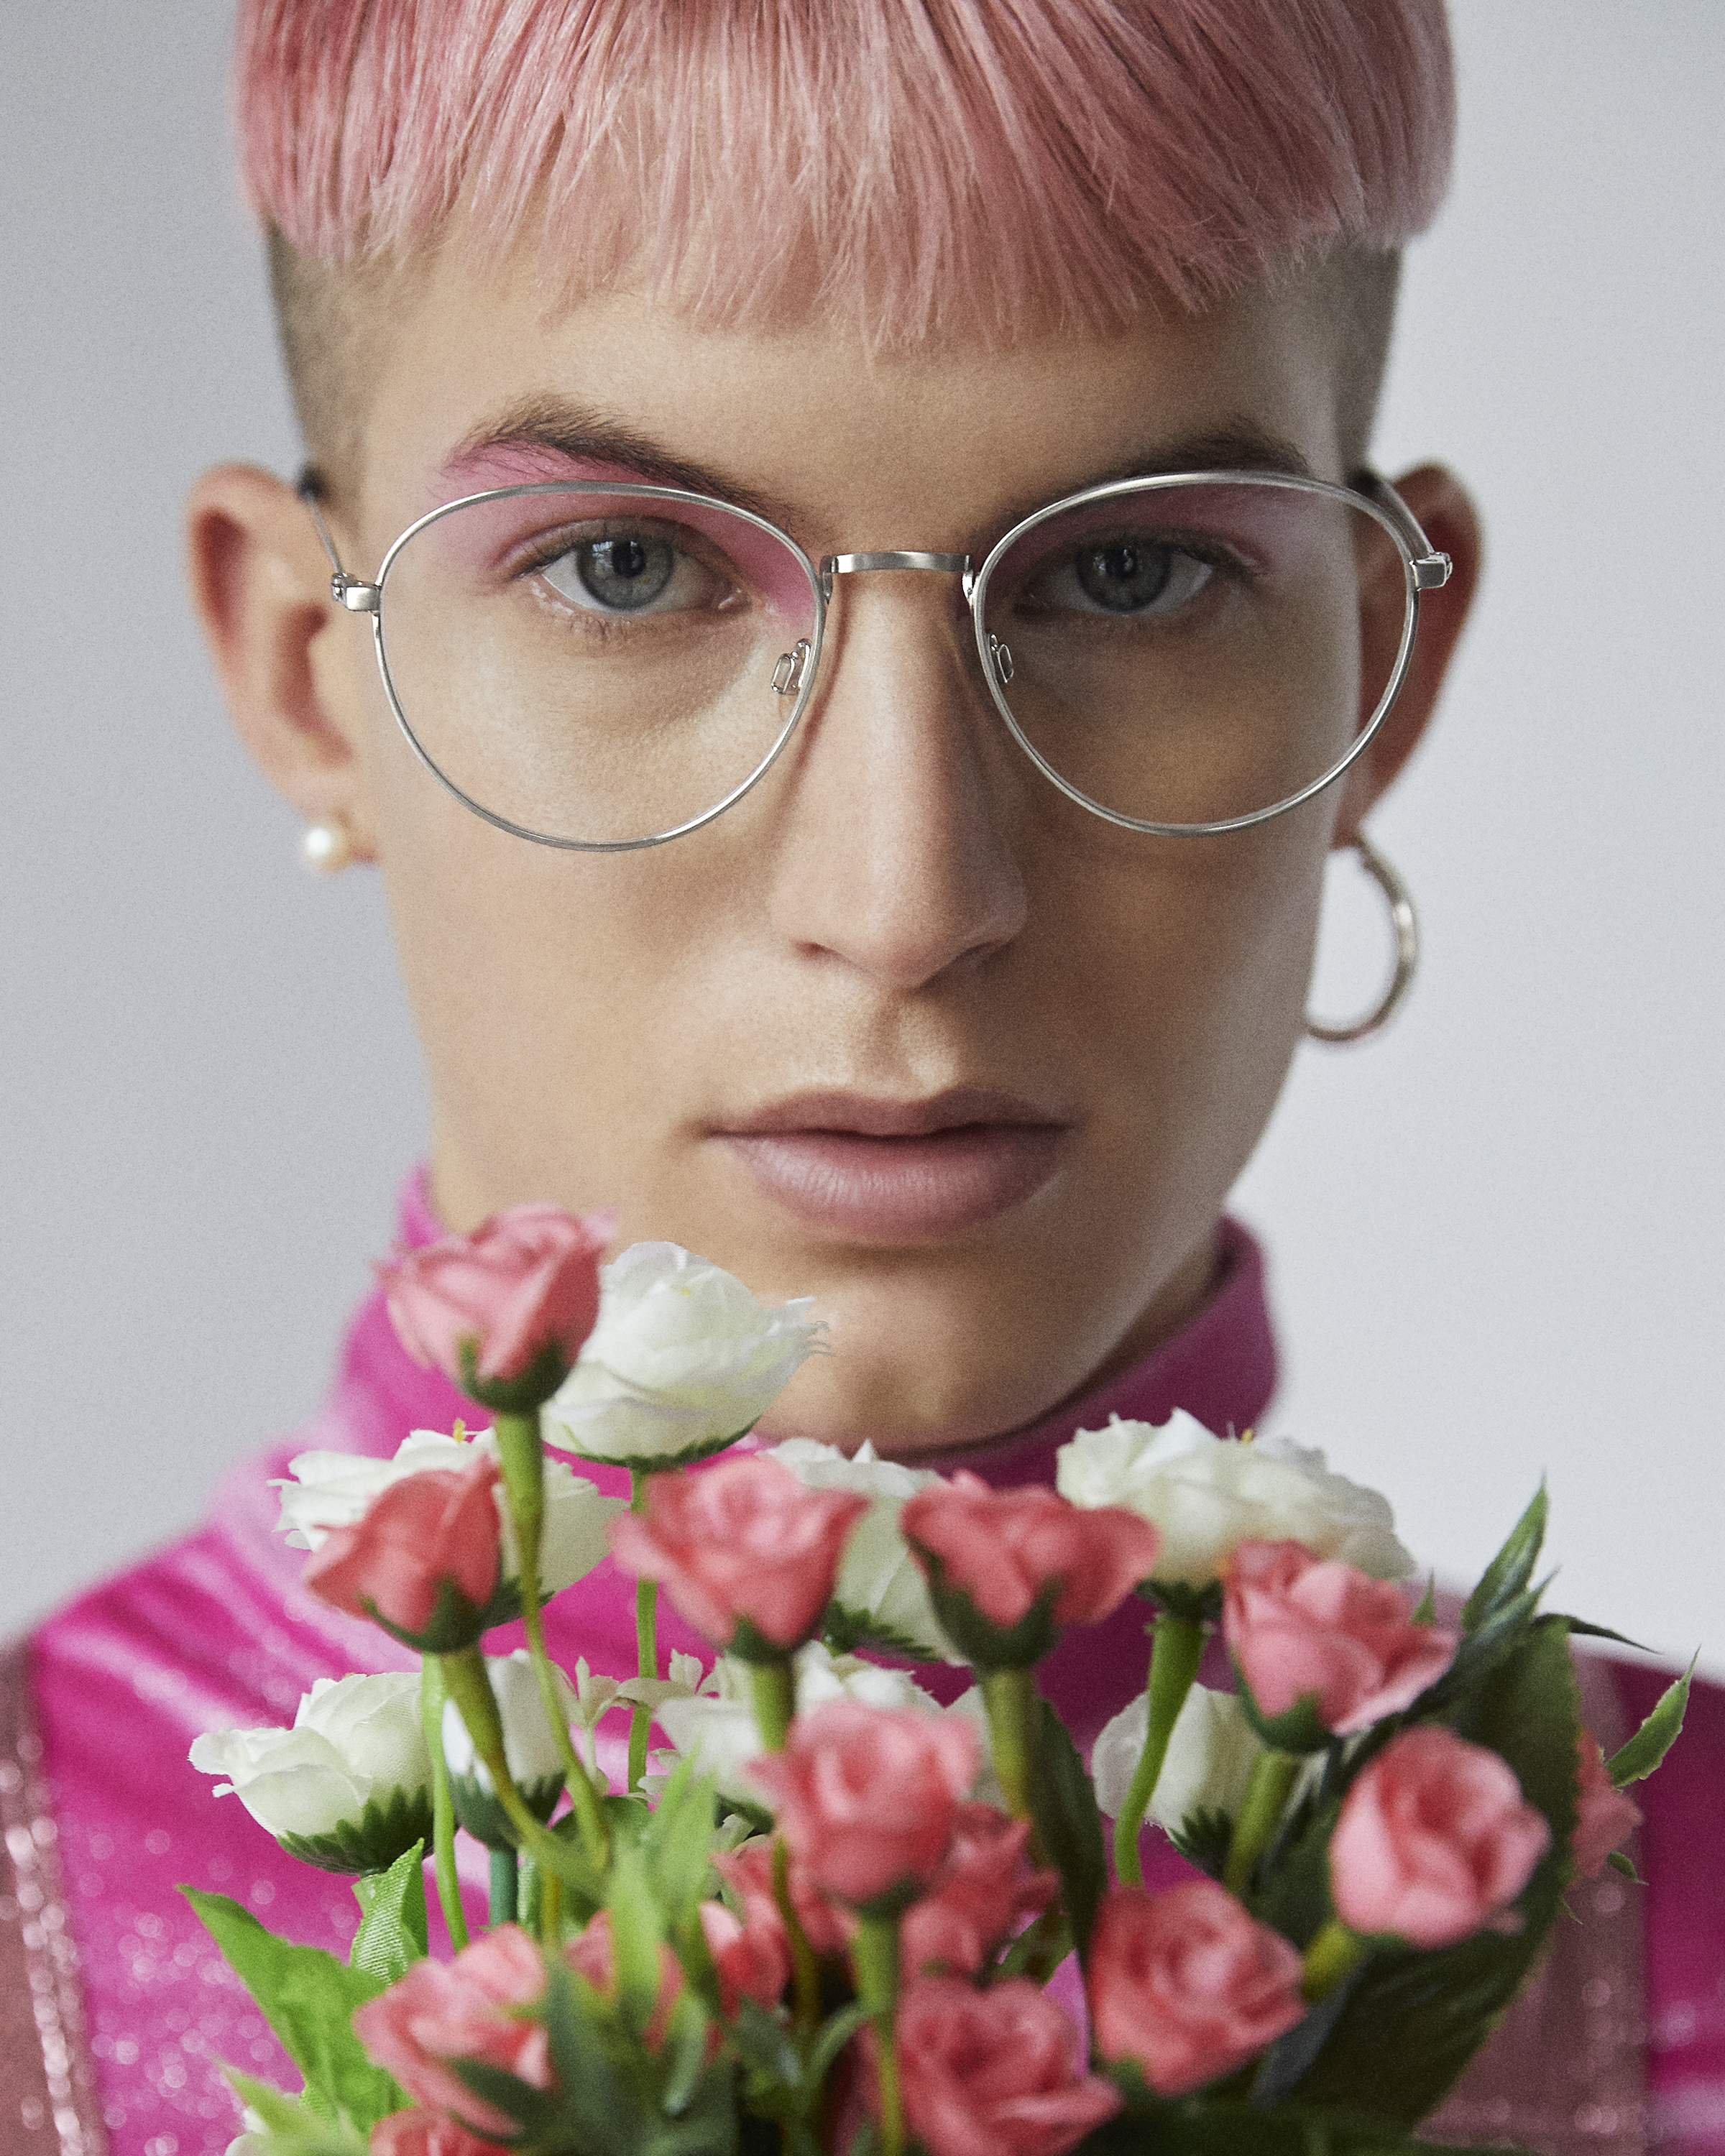 190124_WP_GusDapperton_0817.jpg